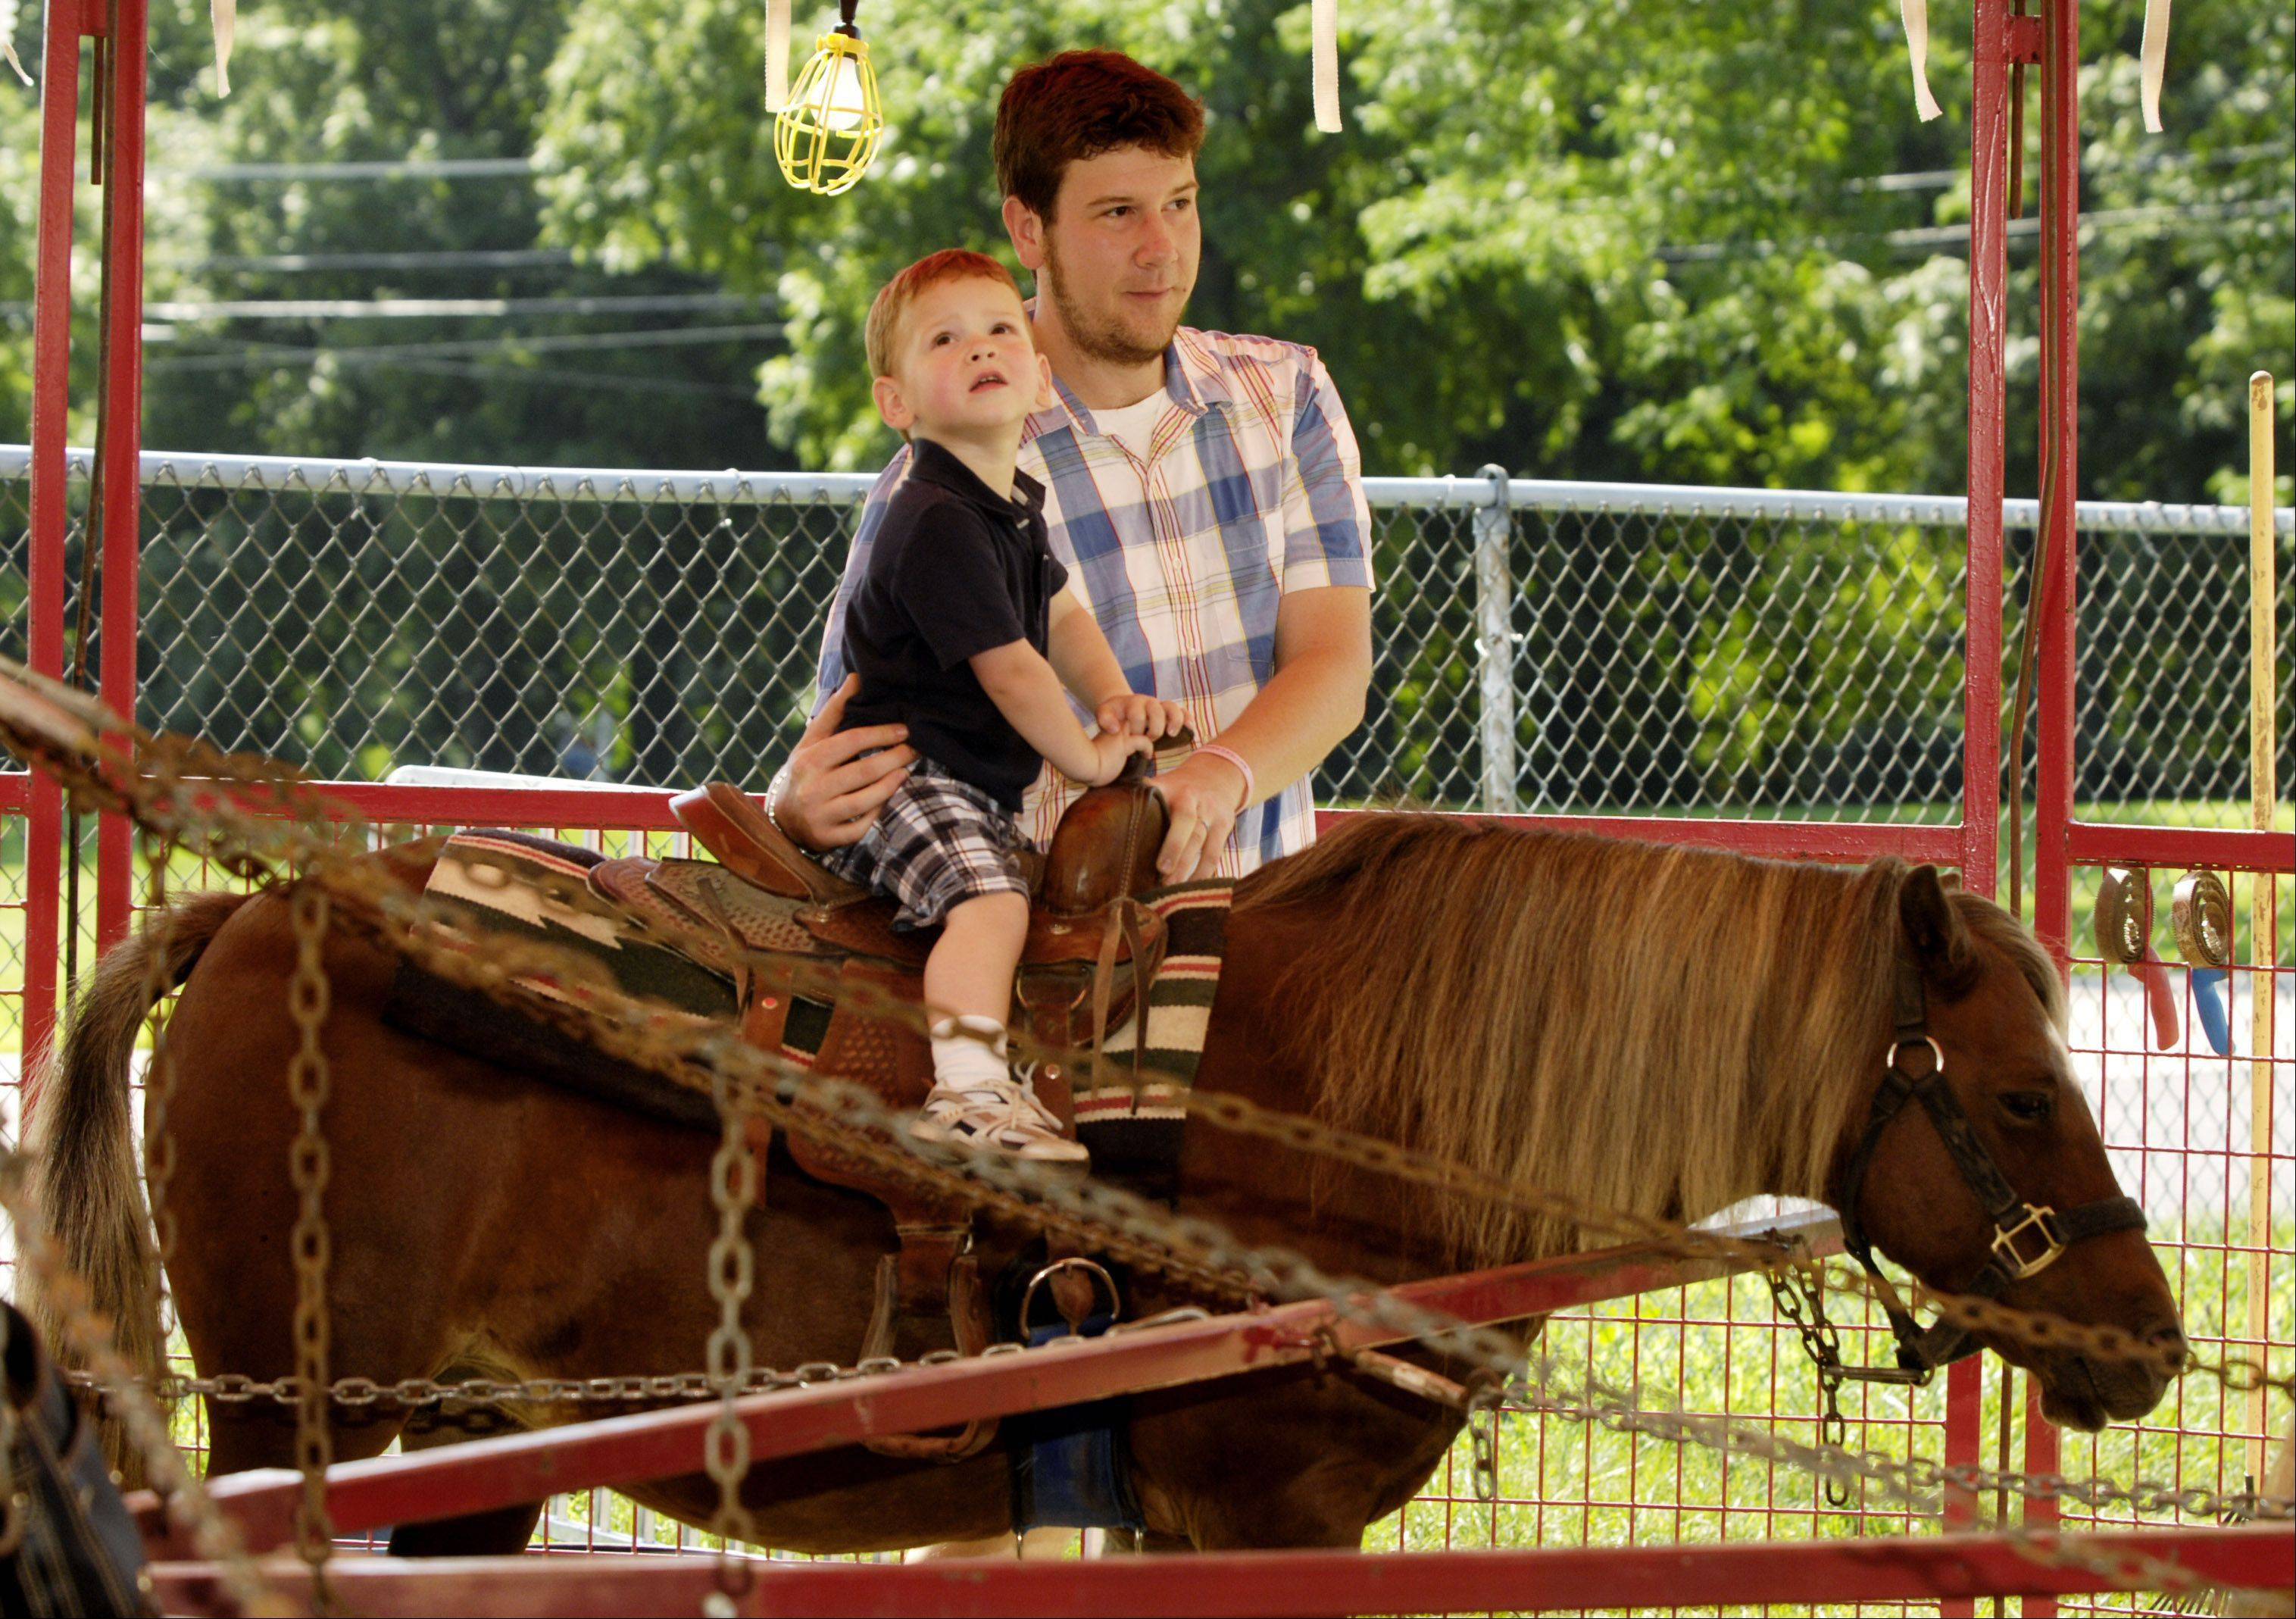 Matt Golas of Naperville takes his 2 1/2 year son Theo for a pony ride.